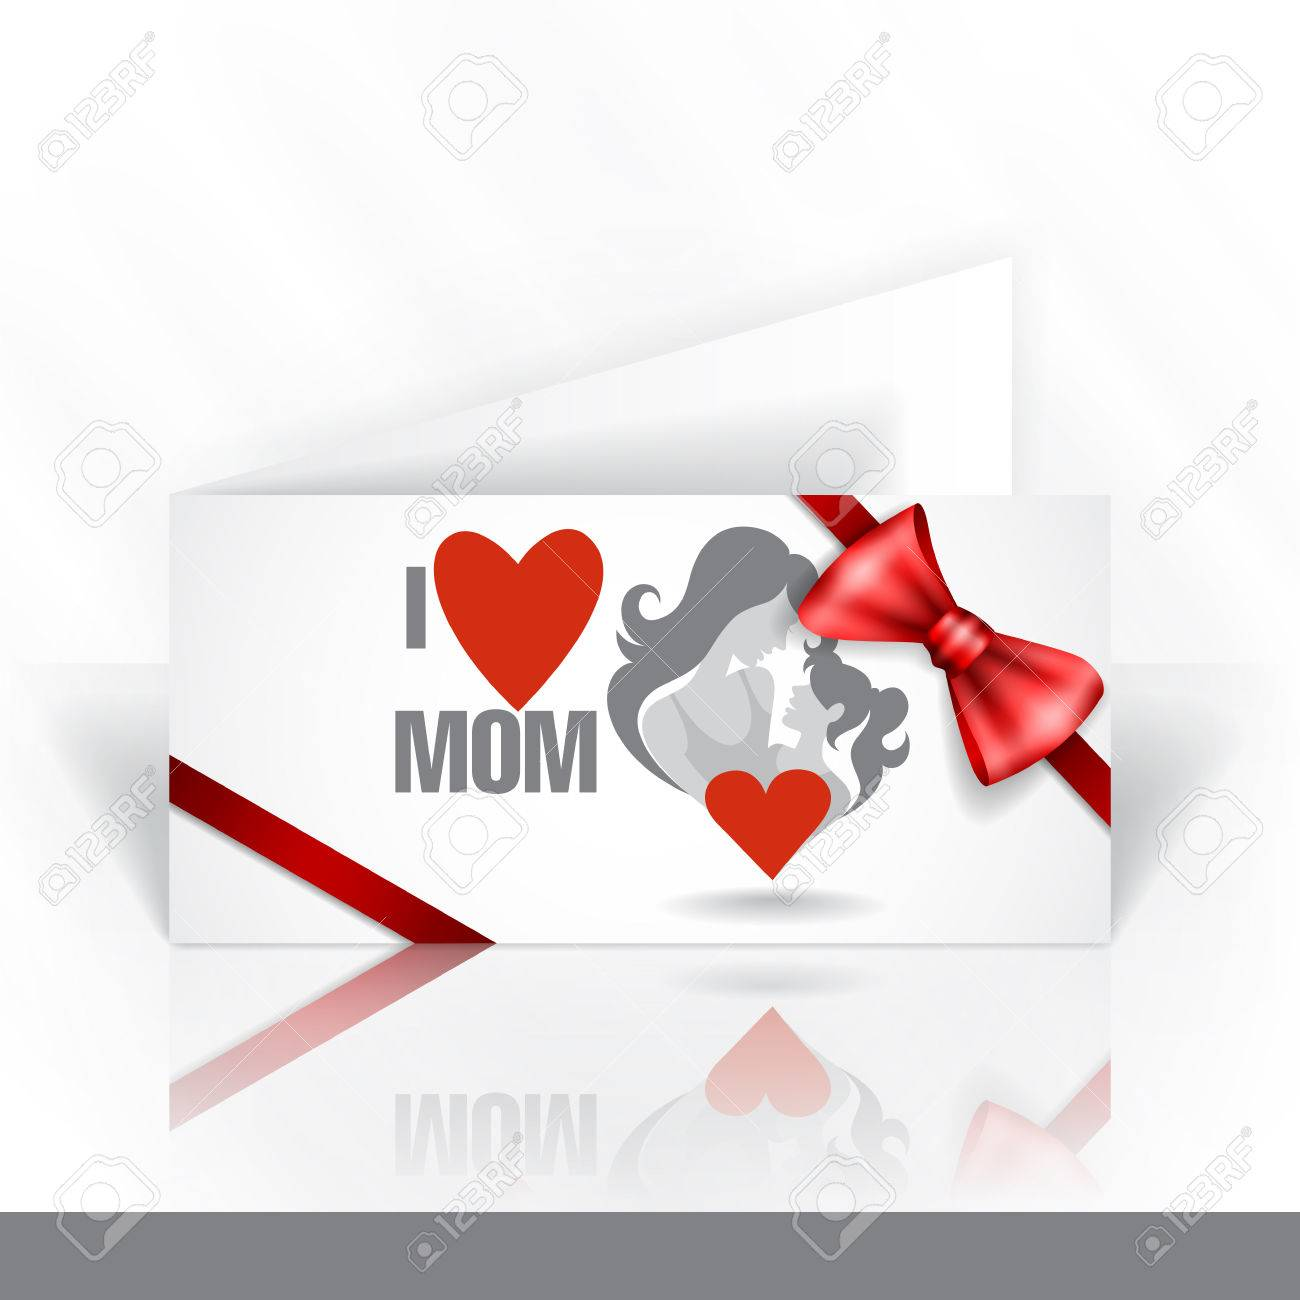 Invitation card design template happy mothers day foto royalty invitation card design template happy mothers day banco de imagens 27723514 stopboris Choice Image